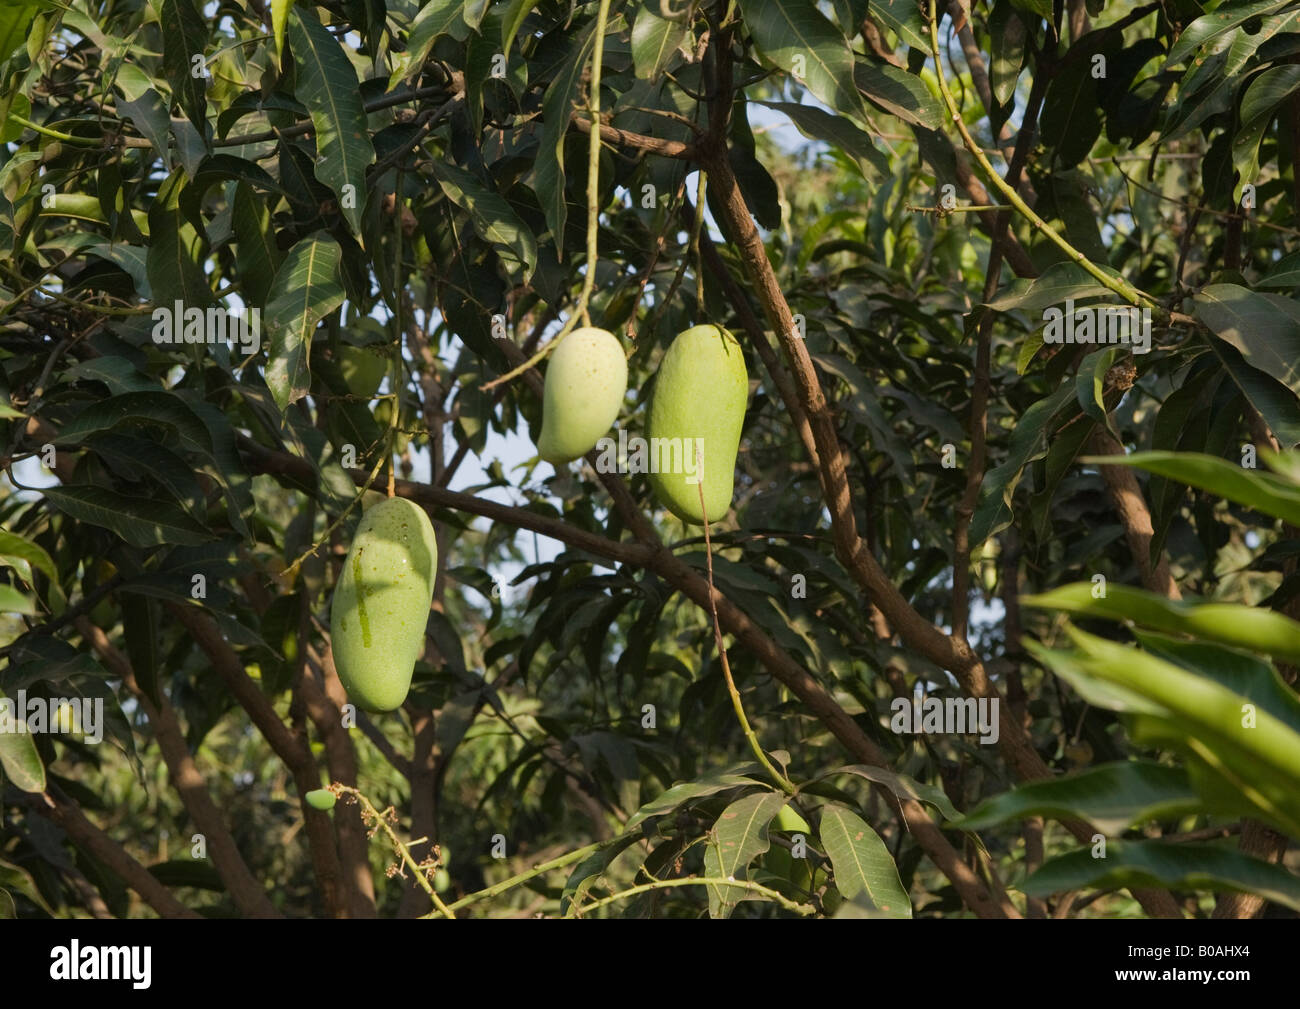 Mango tree with unripe green skinned 'kesar' variety of mangoes as seen in the month of April. - Stock Image